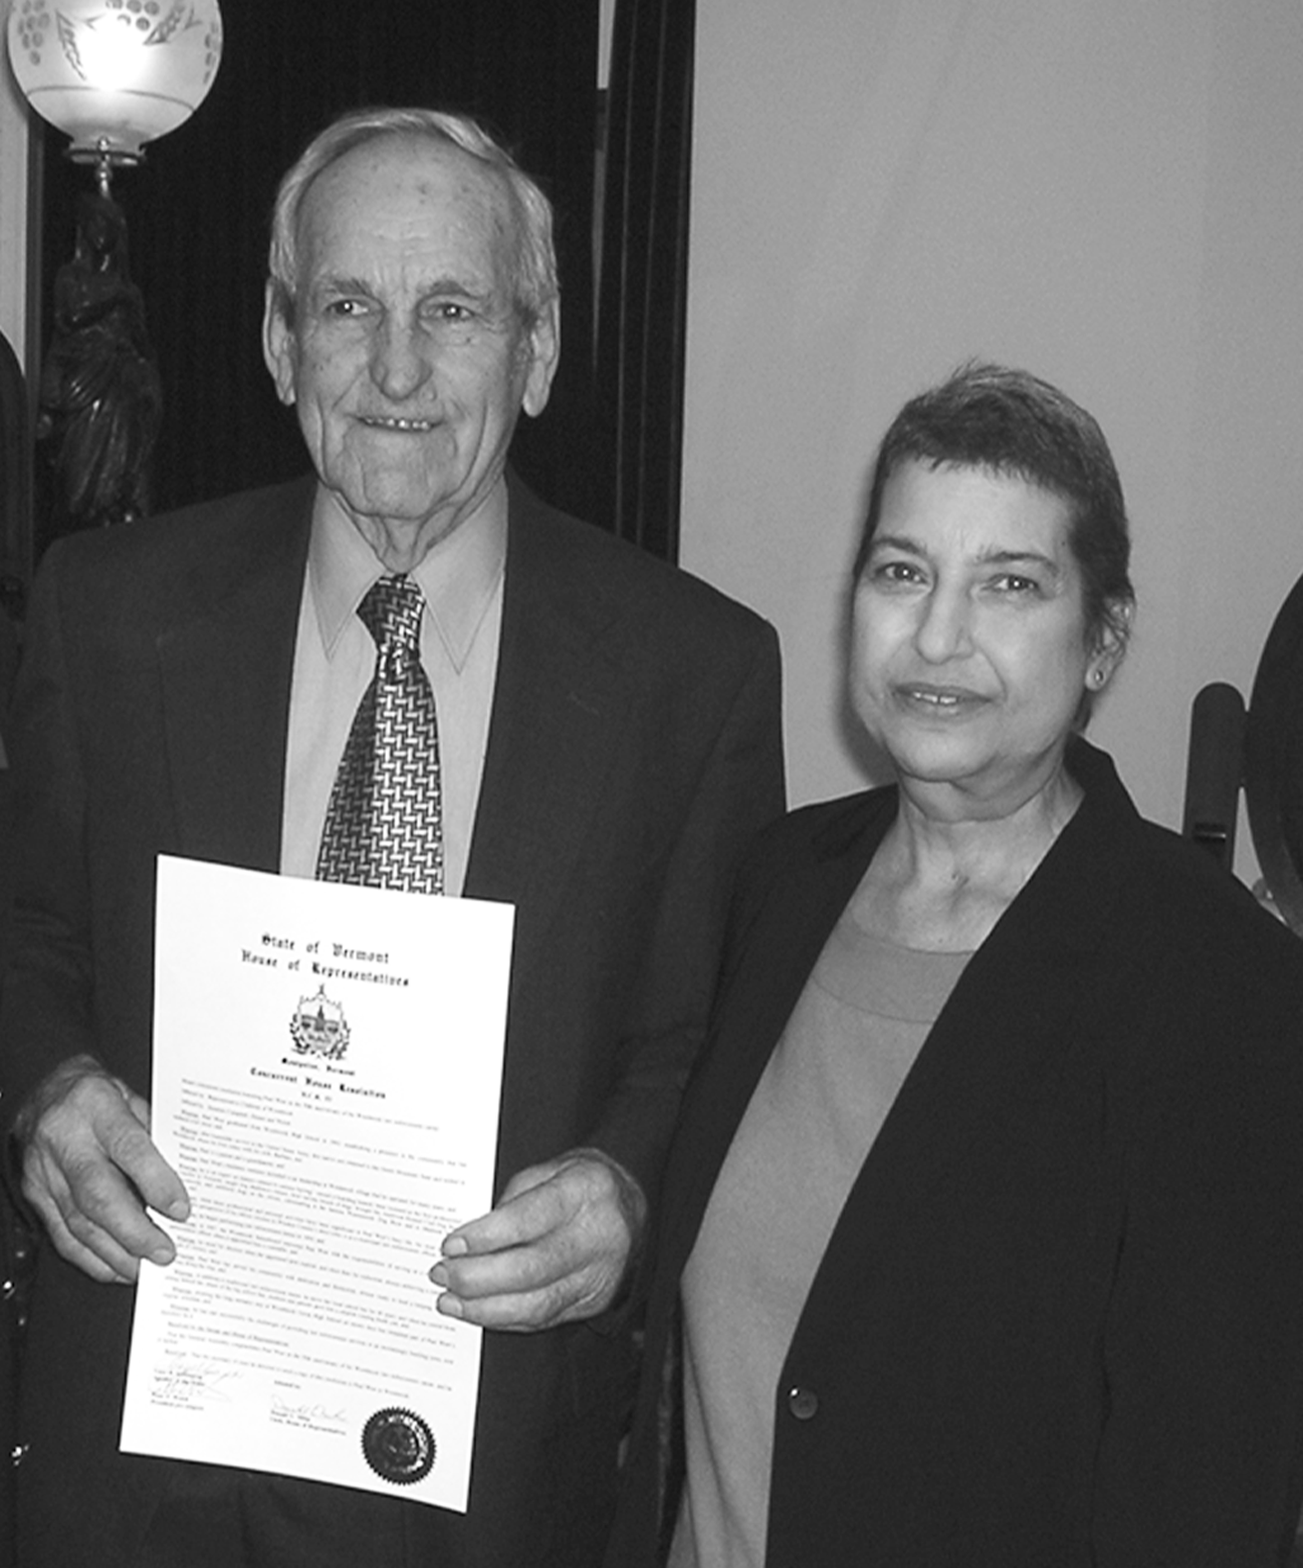 In 2005, Paul was honored for half a century of service in law enforcement. In this photo, he is shown with his wife, Barbara, at a special recognition ceremony held in Montpelier, Vermont.